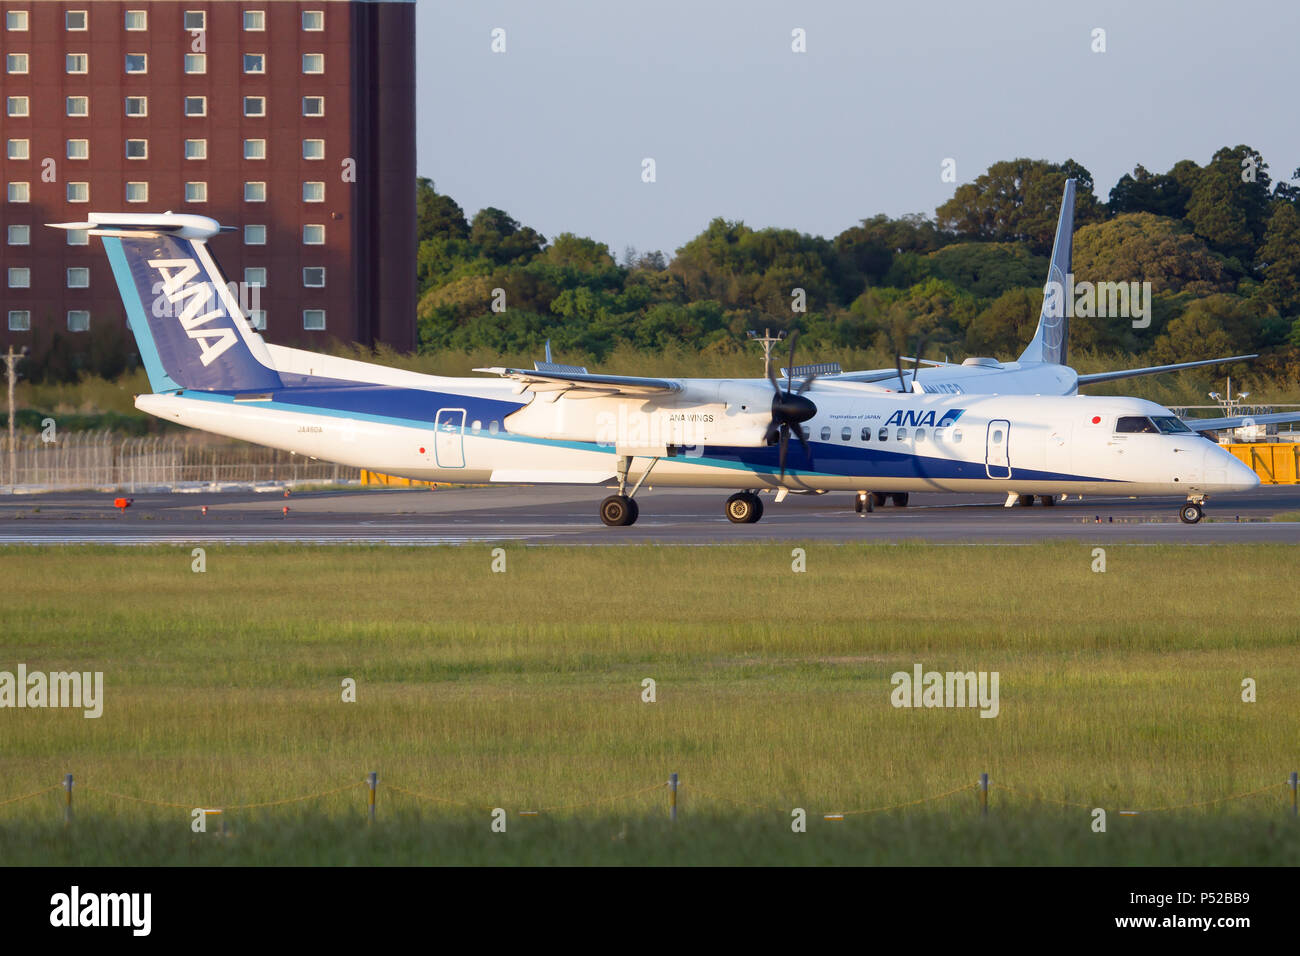 Tokyo, Japan. 5th May, 2017. All Nippon Airways ANA Wings Bombardier Dash 8-400 lining up at Tokyo Narita airport, Credit: Fabrizio Gandolfo/SOPA Images/ZUMA Wire/Alamy Live News - Stock Image